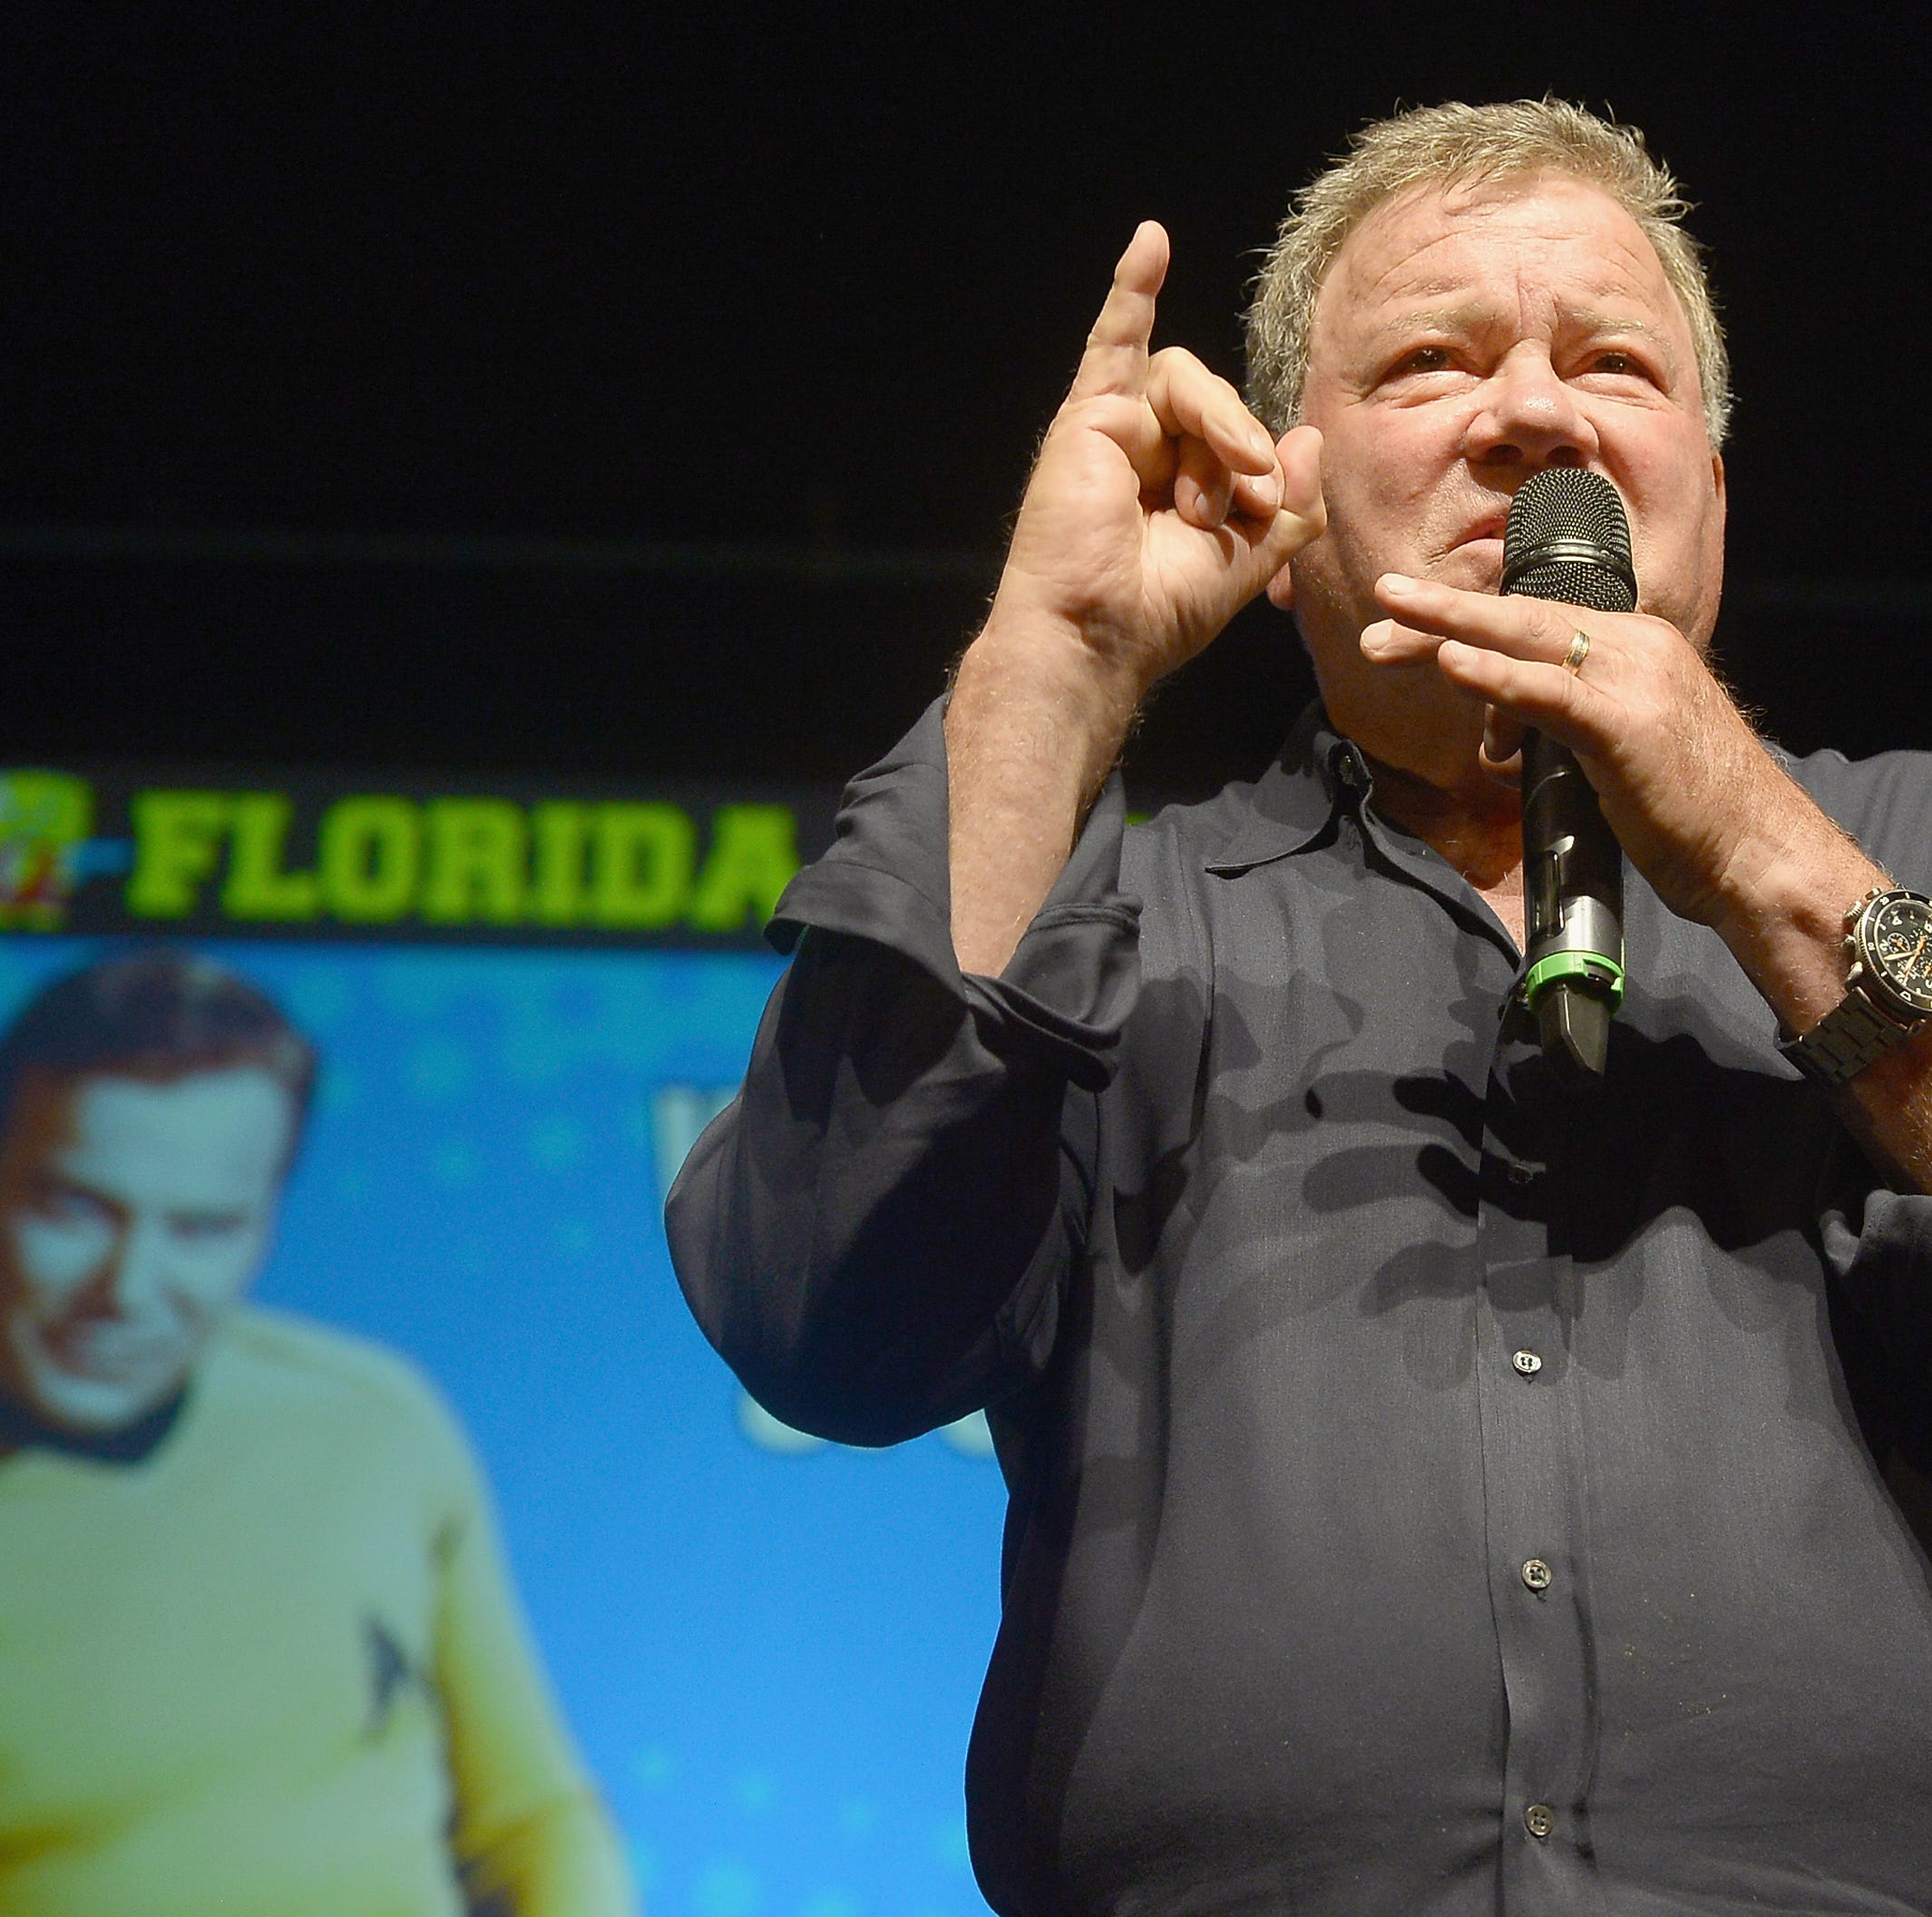 William Shatner cancels Weidner Center visit due to scheduling conflict